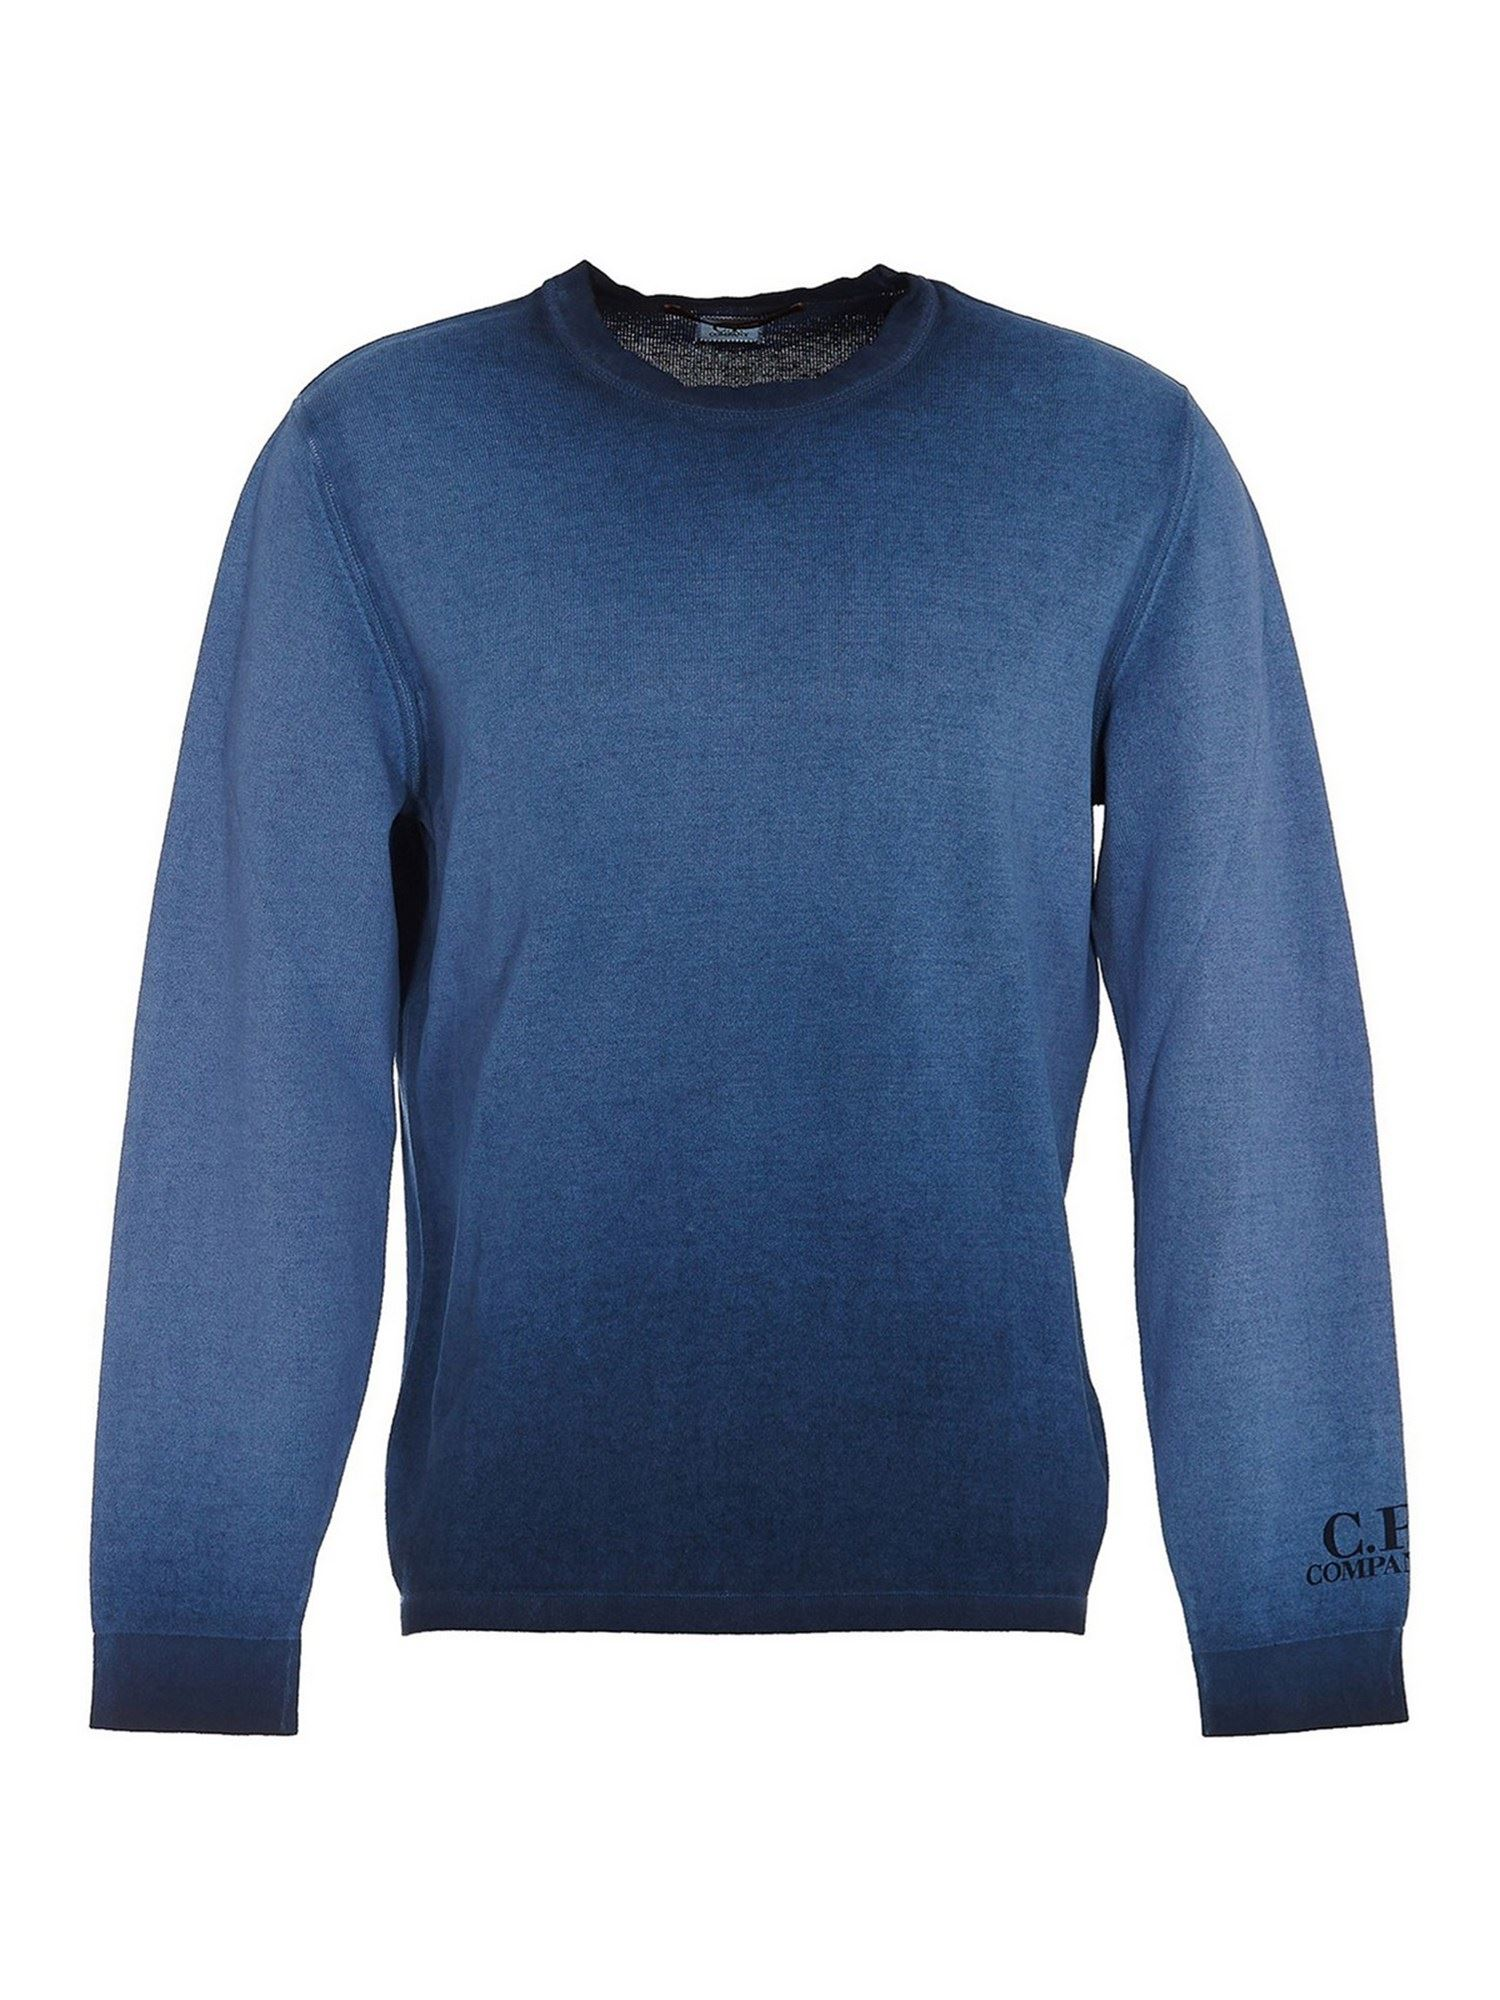 C.p. Company Cottons ROUNDNECK SWEATER IN BLUE